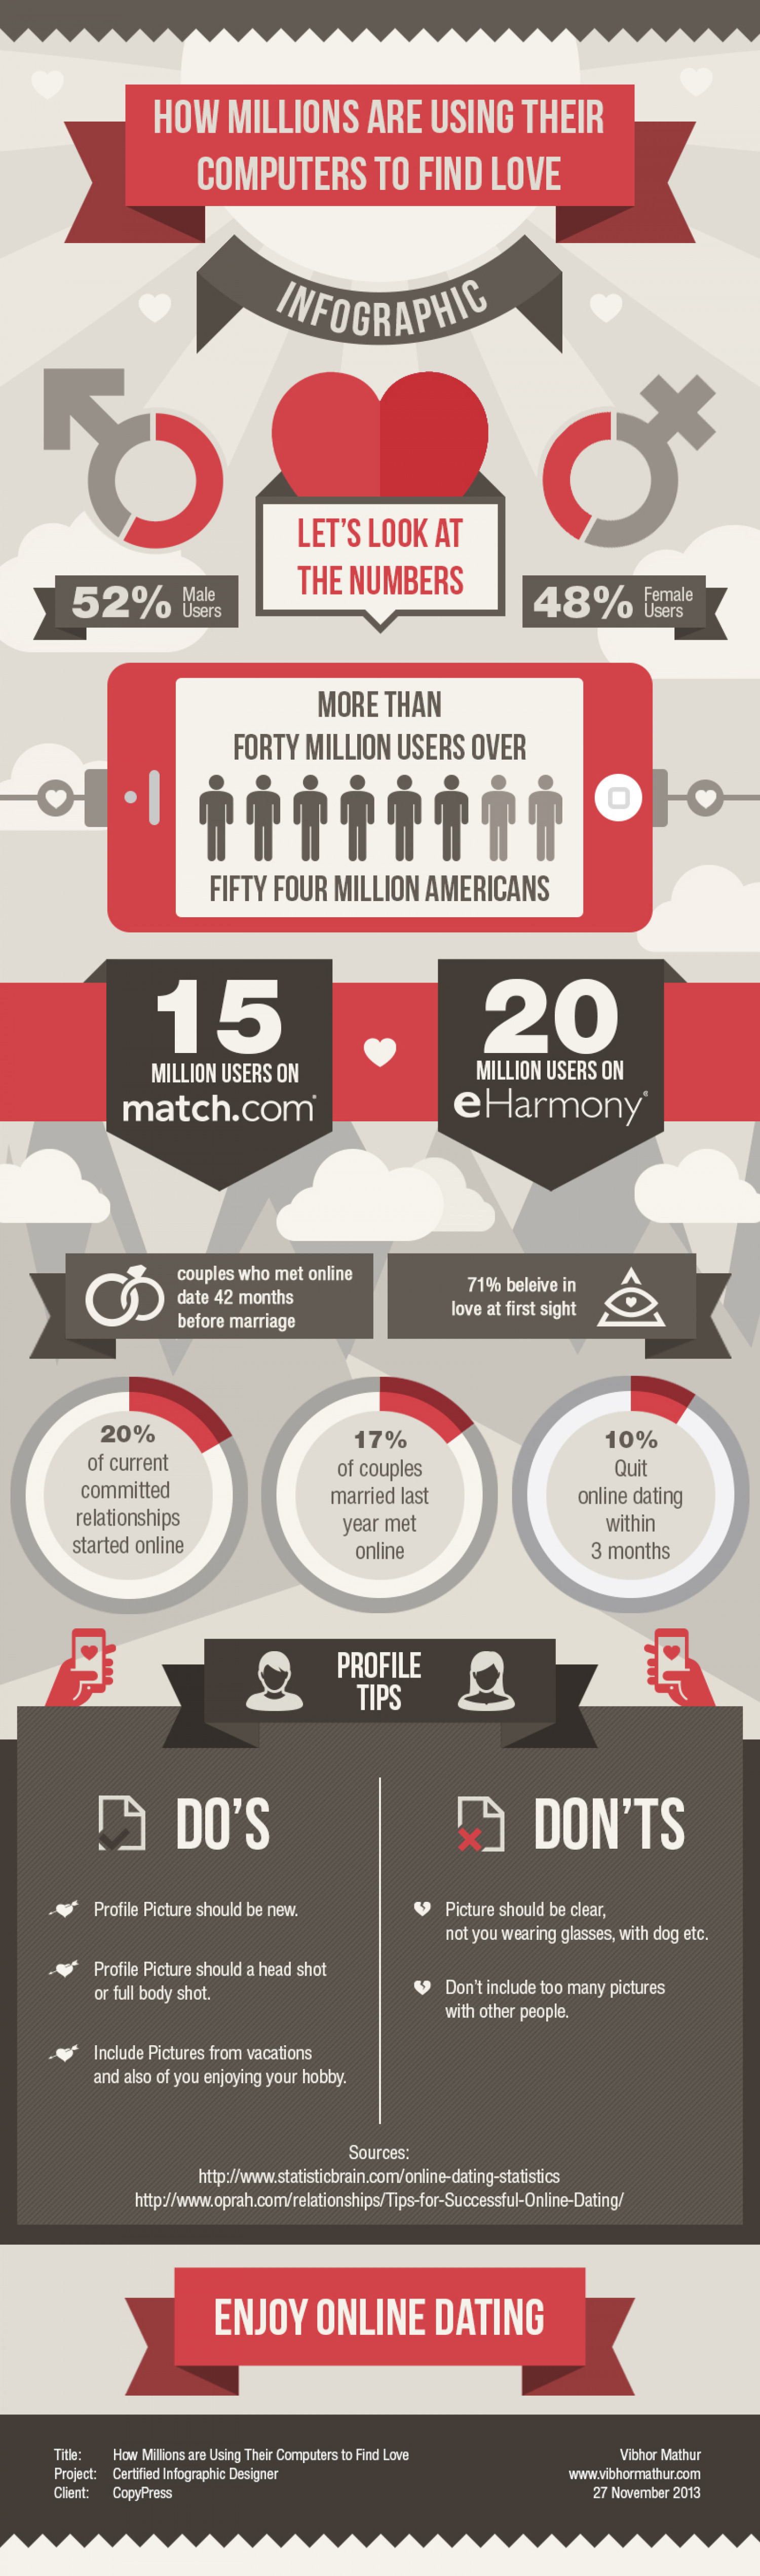 How Millions are Using Their Computers to Find Love Infographic